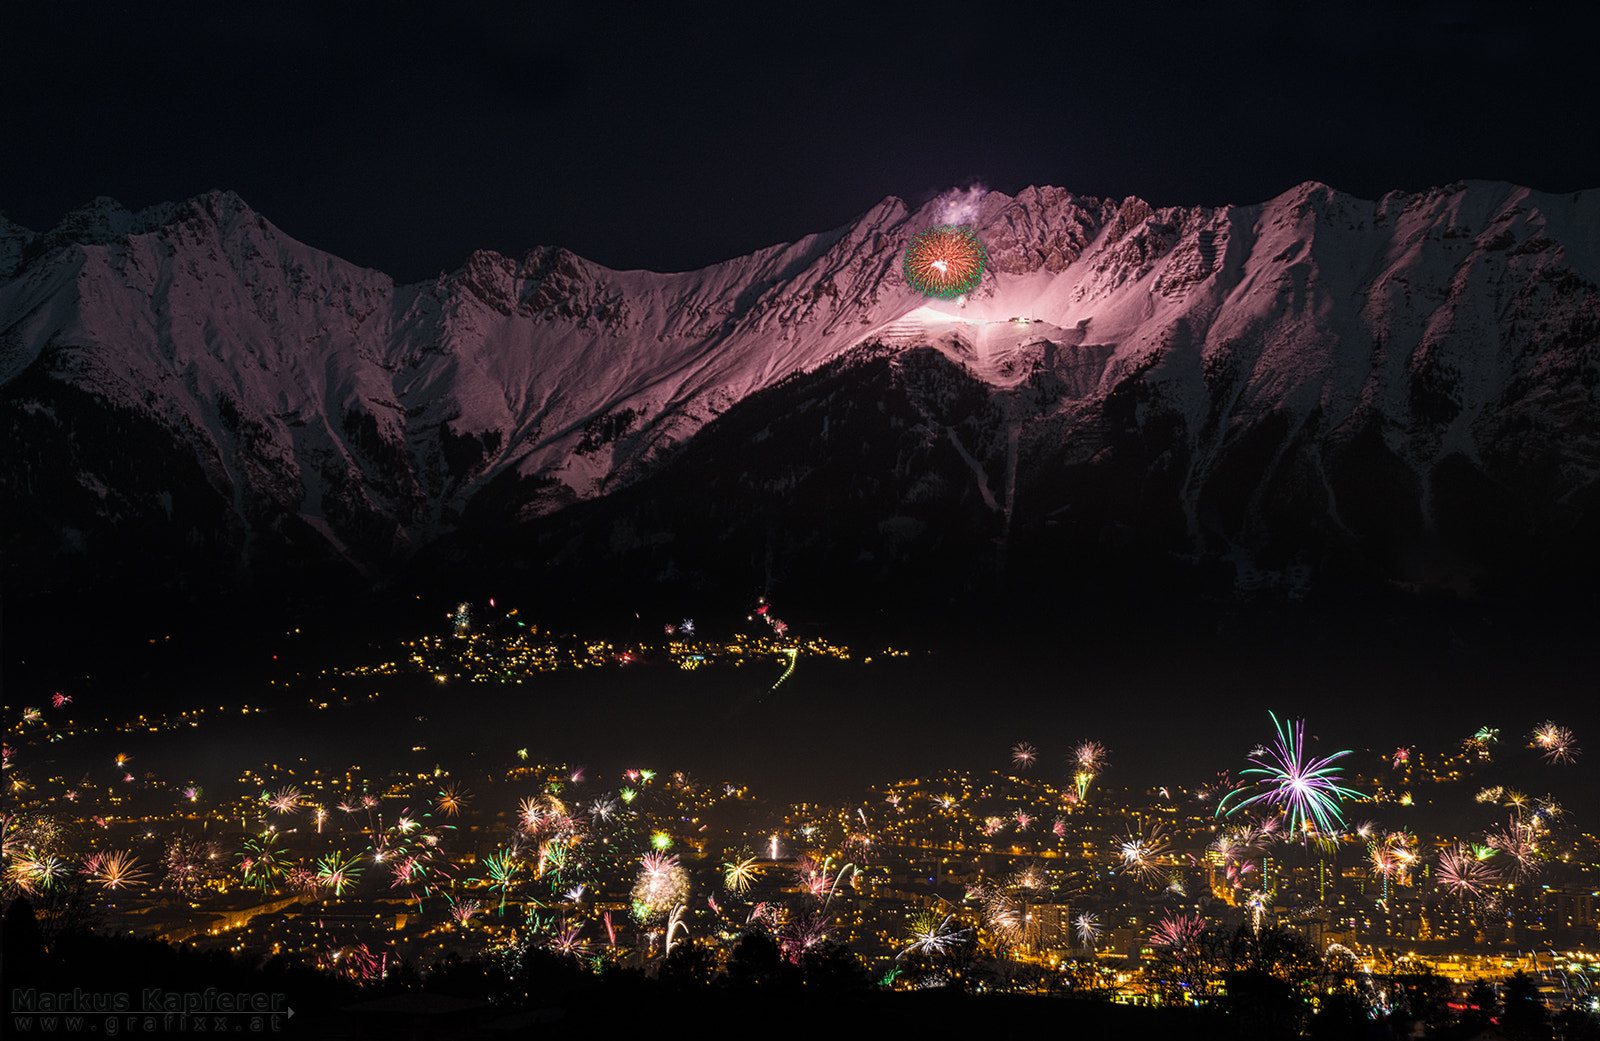 Photograph Happy New Year by Markus Kapferer on 500px